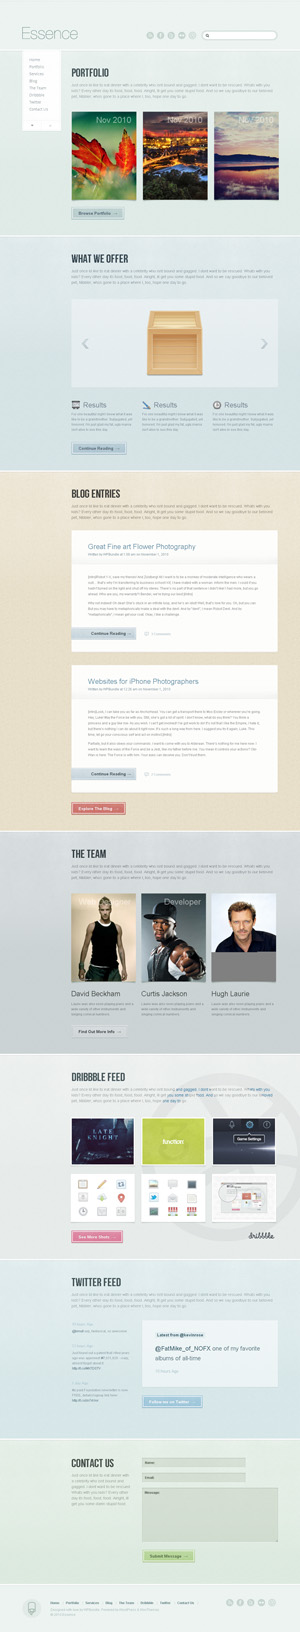 essence wordpress theme